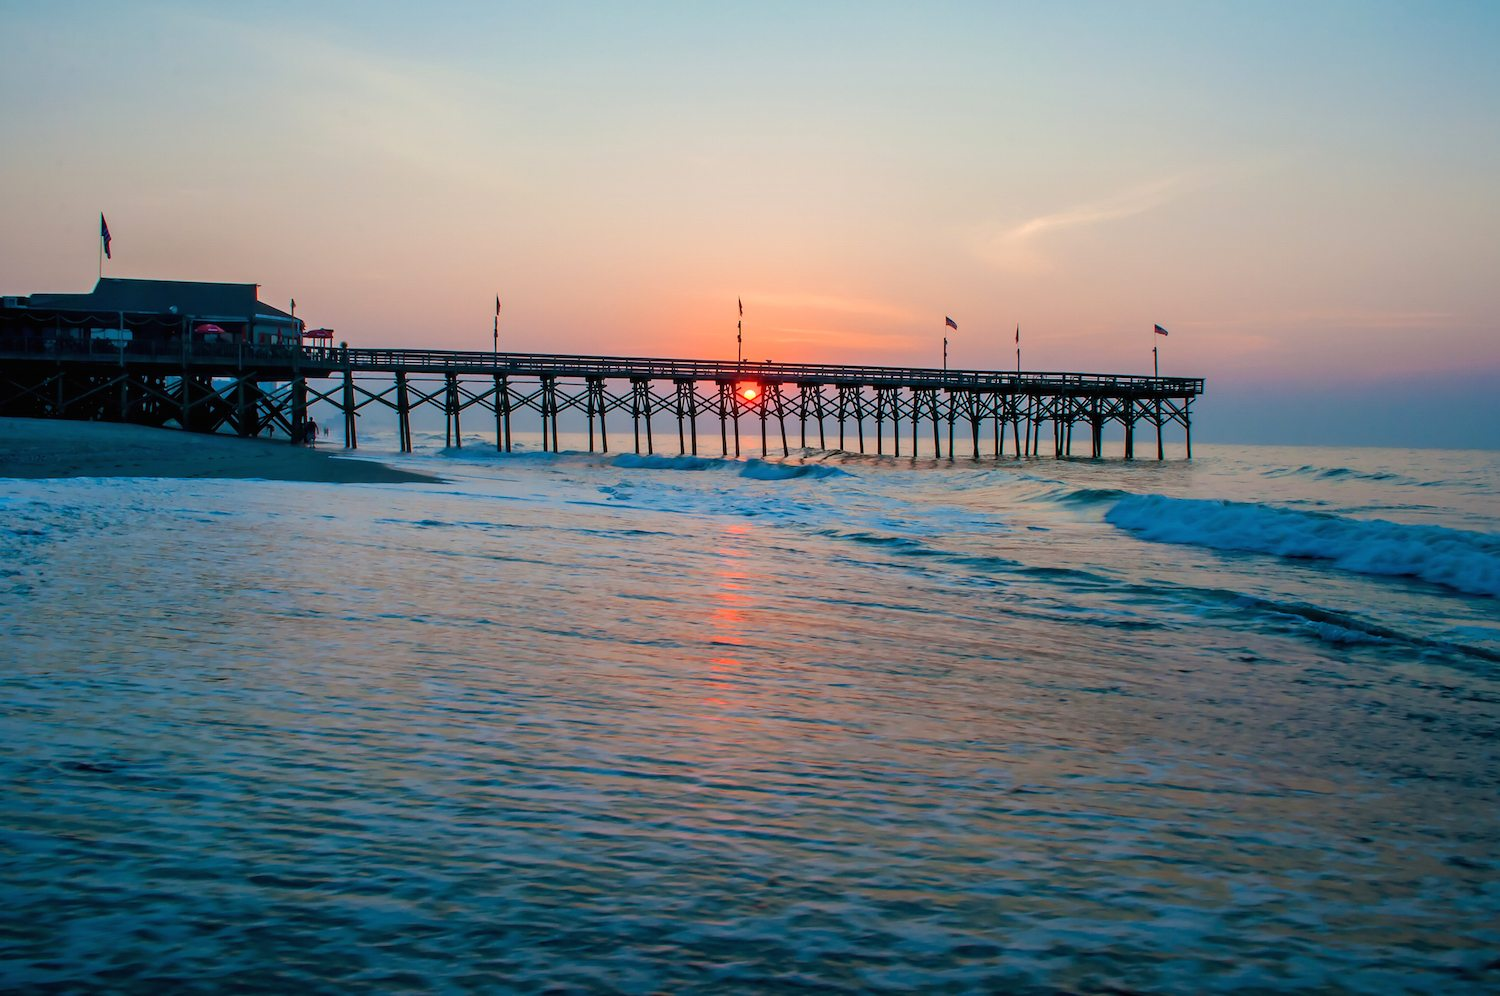 10 Things to See and Do in Myrtle Beach, SC